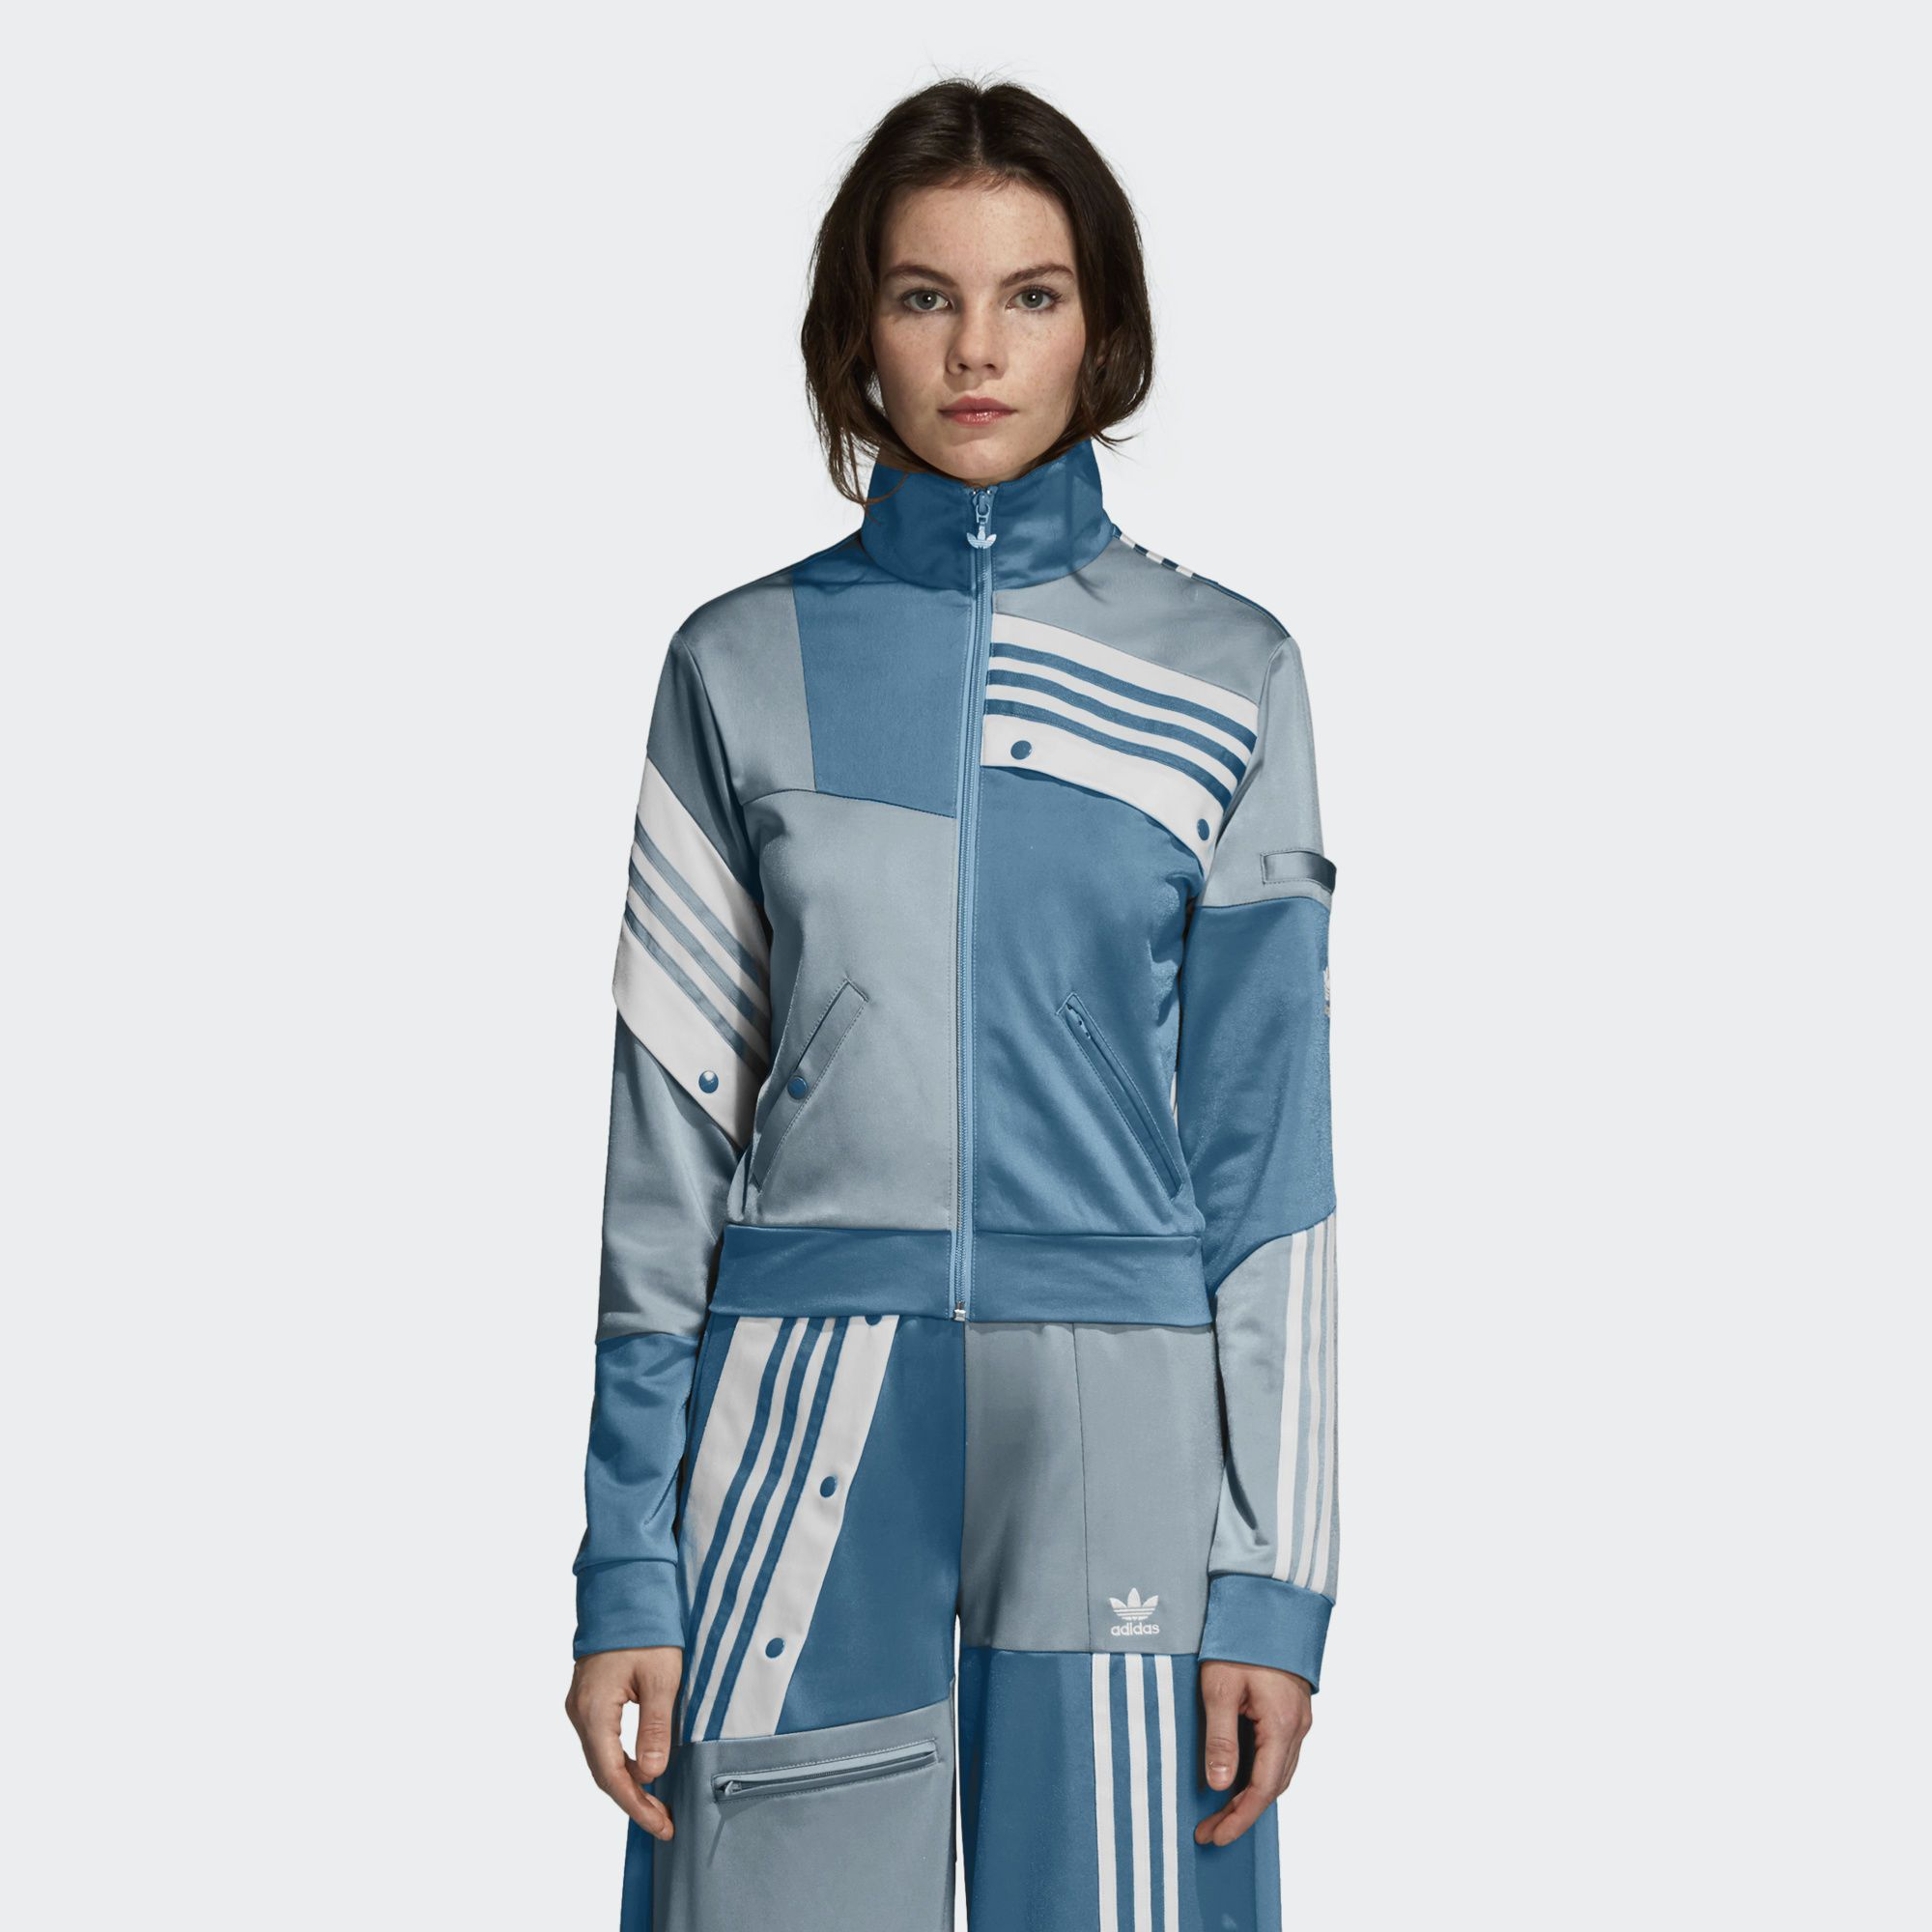 big sale 3e6a3 2c749 Shop for Deconstructed Track Jacket - Grey at adidas.co.uk! See all the  styles and colours of Deconstructed Track Jacket - Grey at the official  adidas UK ...